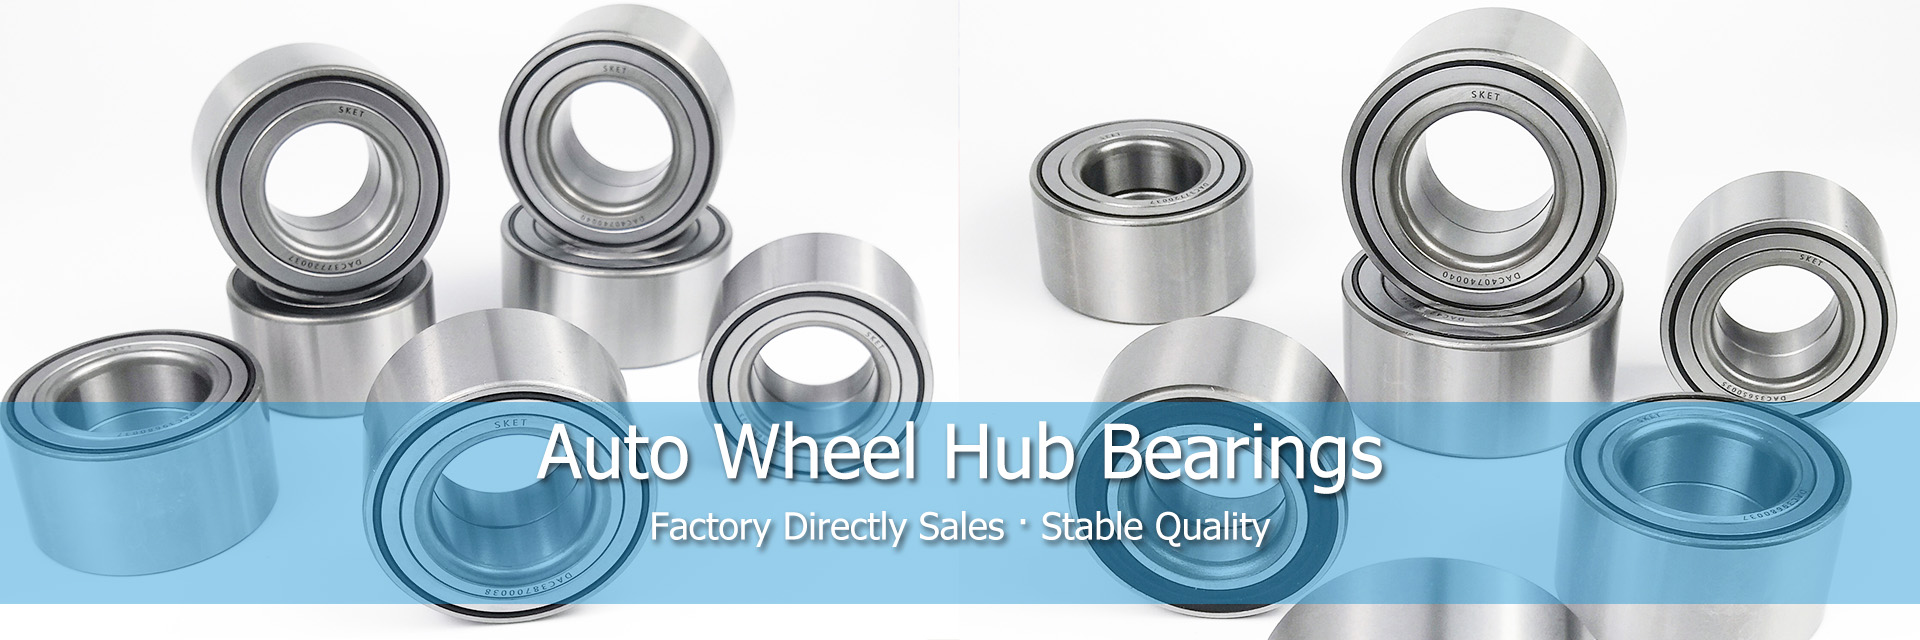 Auto Wheel Hub Bearings